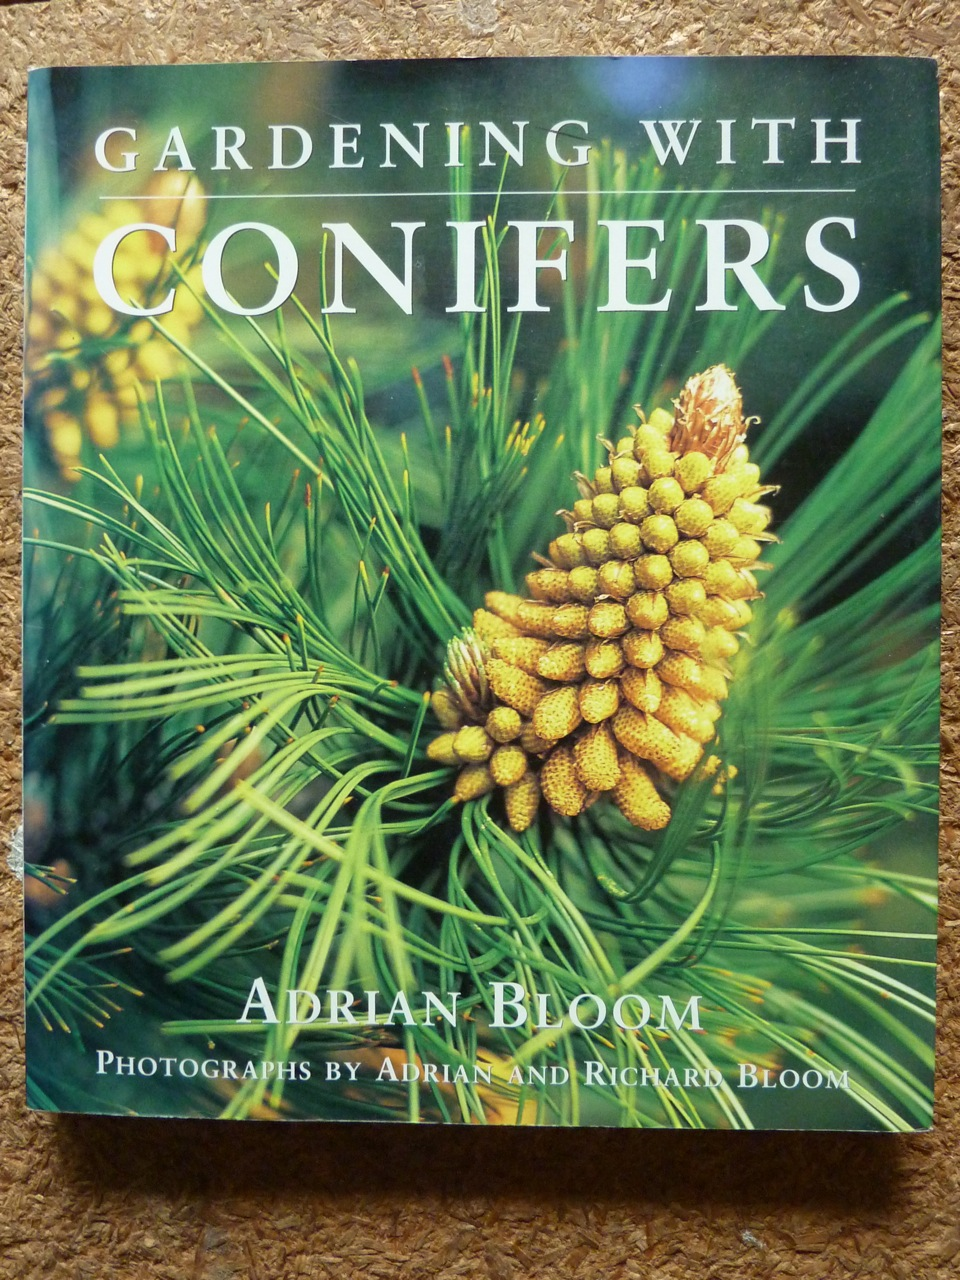 Gardening With Conifers by Adrian Bloom (2005, Paperback, Reprint)